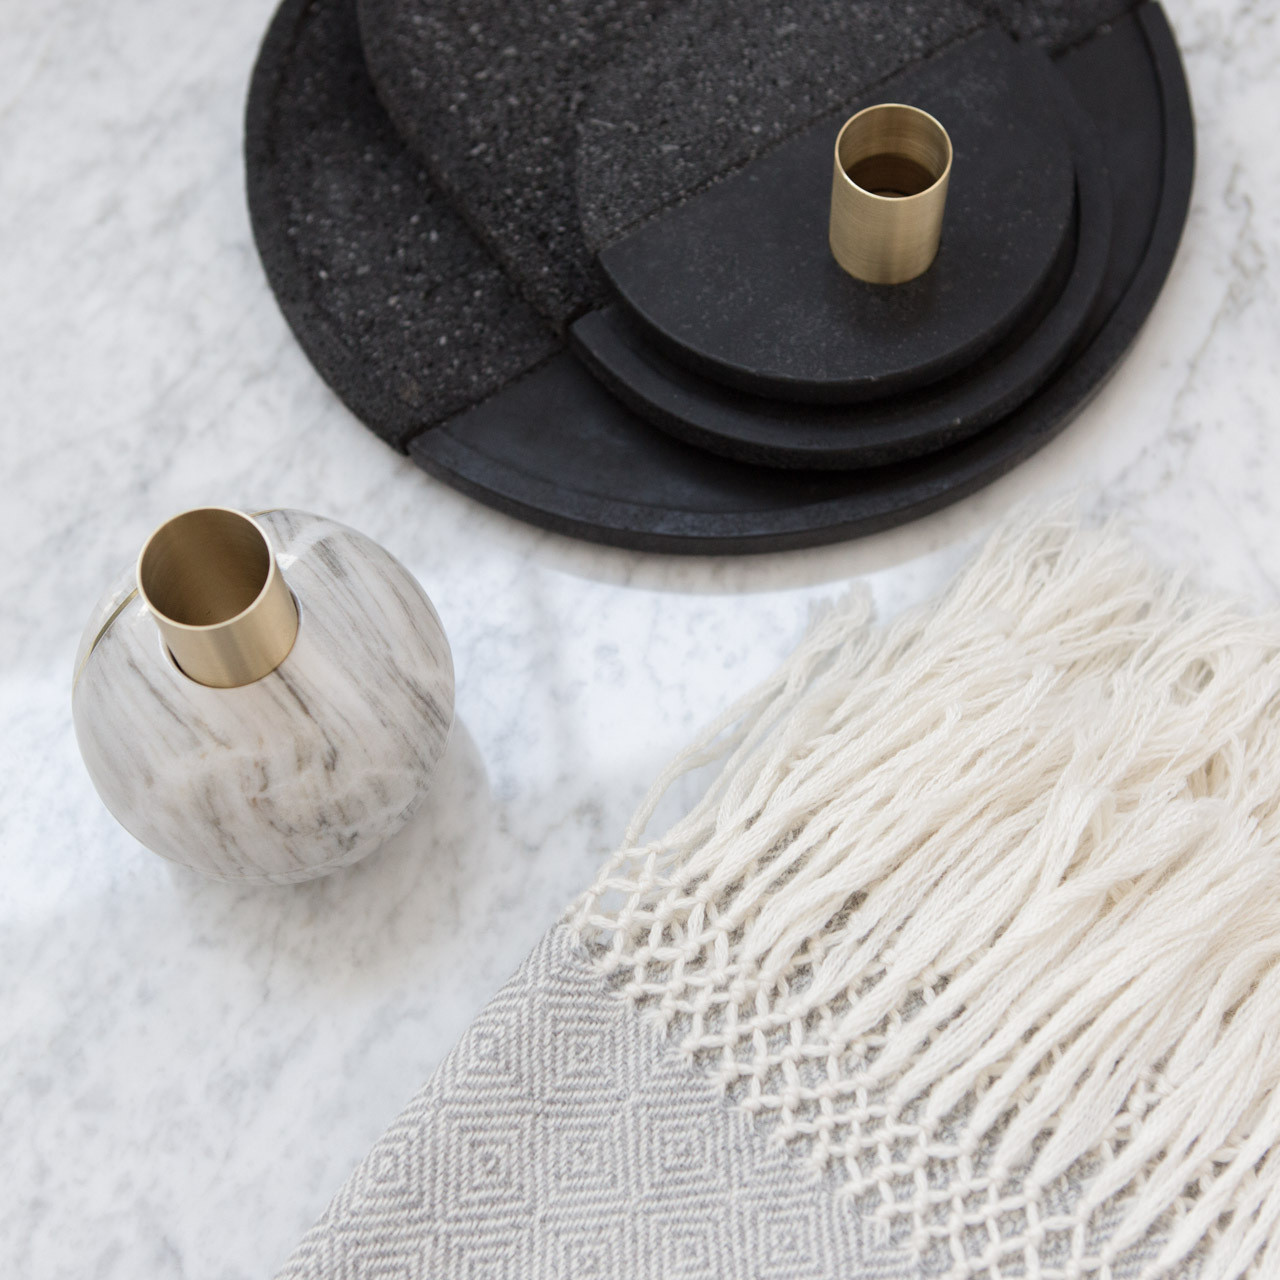 Lava trays and marble candle holders add an earthy element to a minimalist vignette.